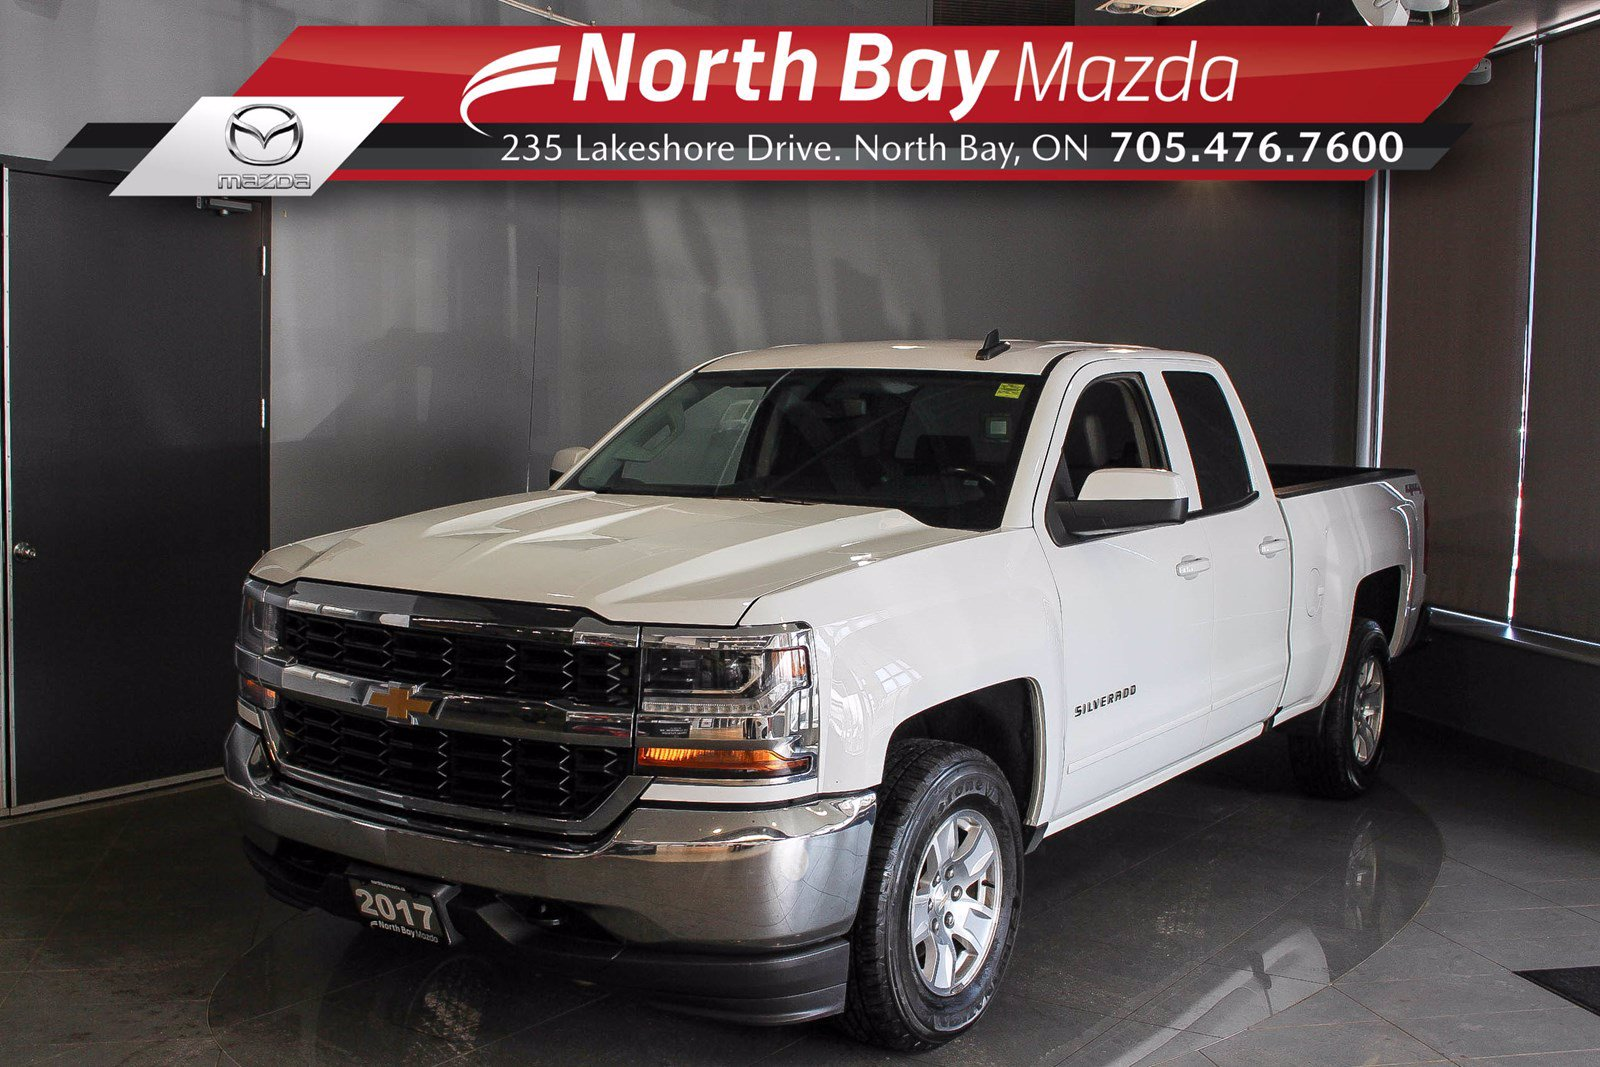 Pre-Owned 2017 Chevrolet Silverado 1500 LT - Test Drive Available by Appt!